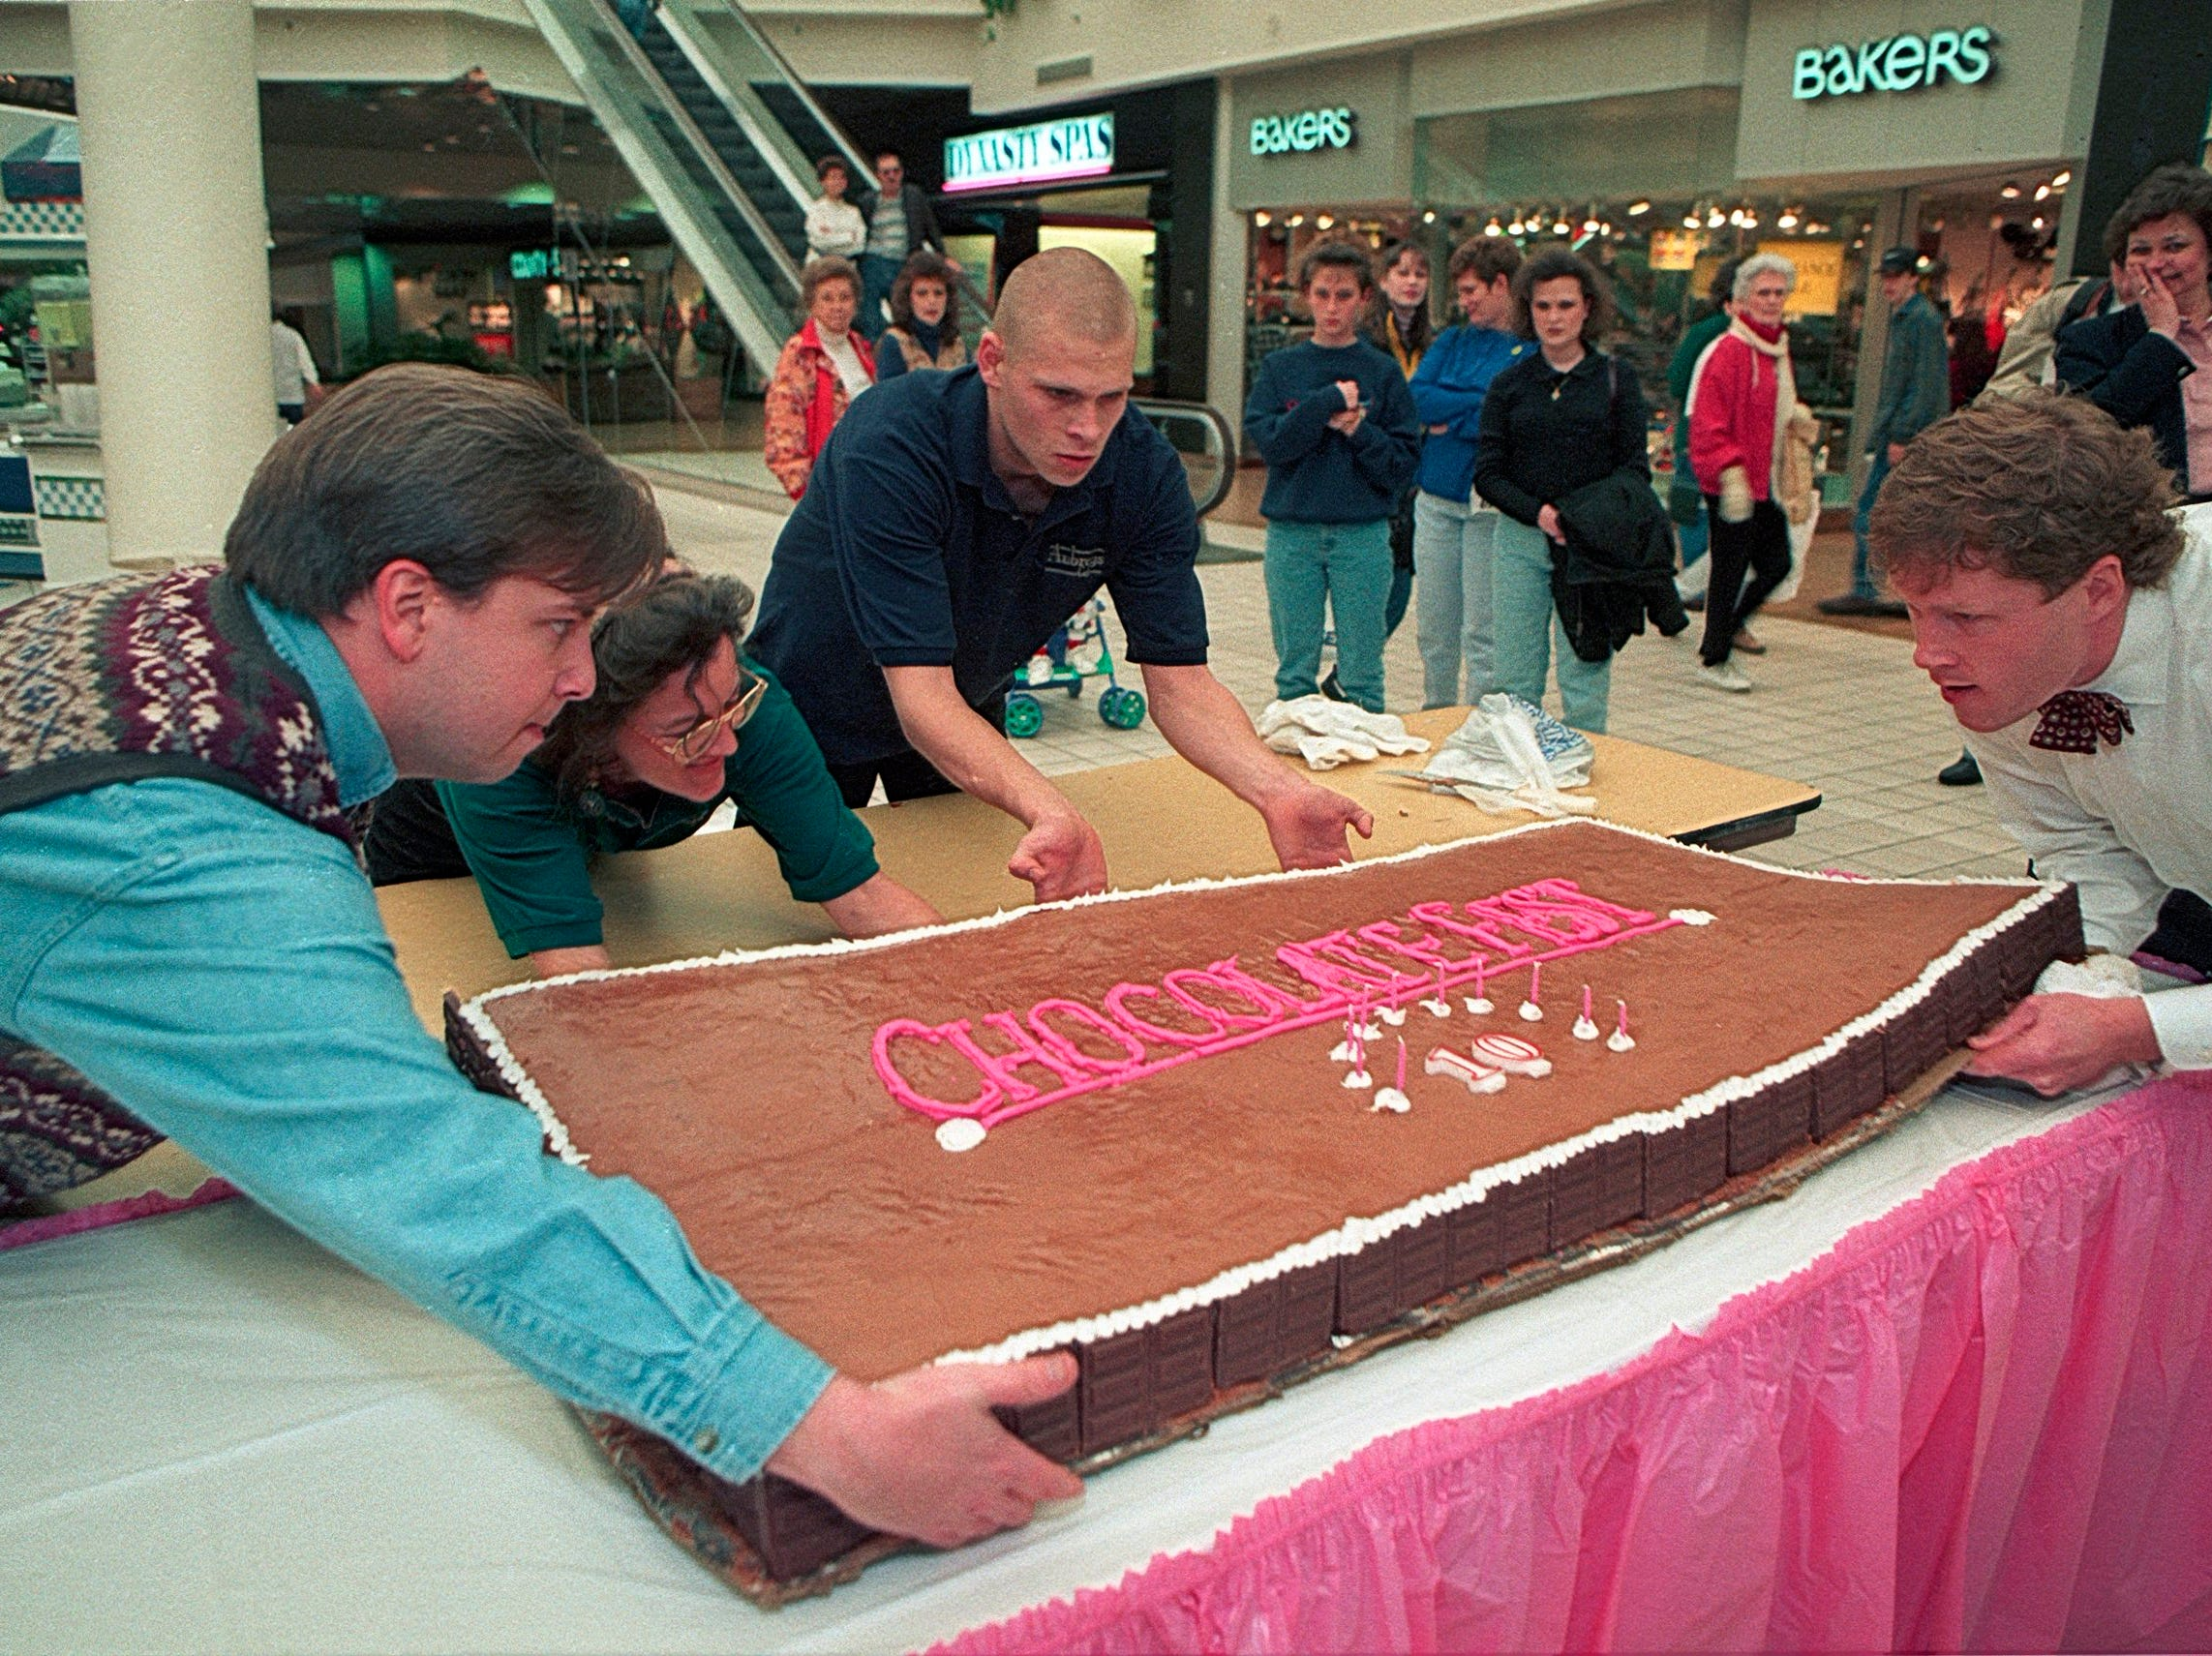 Kurt Ivey, left, Lee Letsinger, Gabe Wilder, and Aubrey's Cafe owner Randy Burleson ready a cake for the tenth anniversary of the Chocolate Fest on Jan. 11, 1996, at East Towne Mall.  Burleson said he used 50 pounds of chocolate candy bars and six two-pound cans of chocolate syrup in the cake.